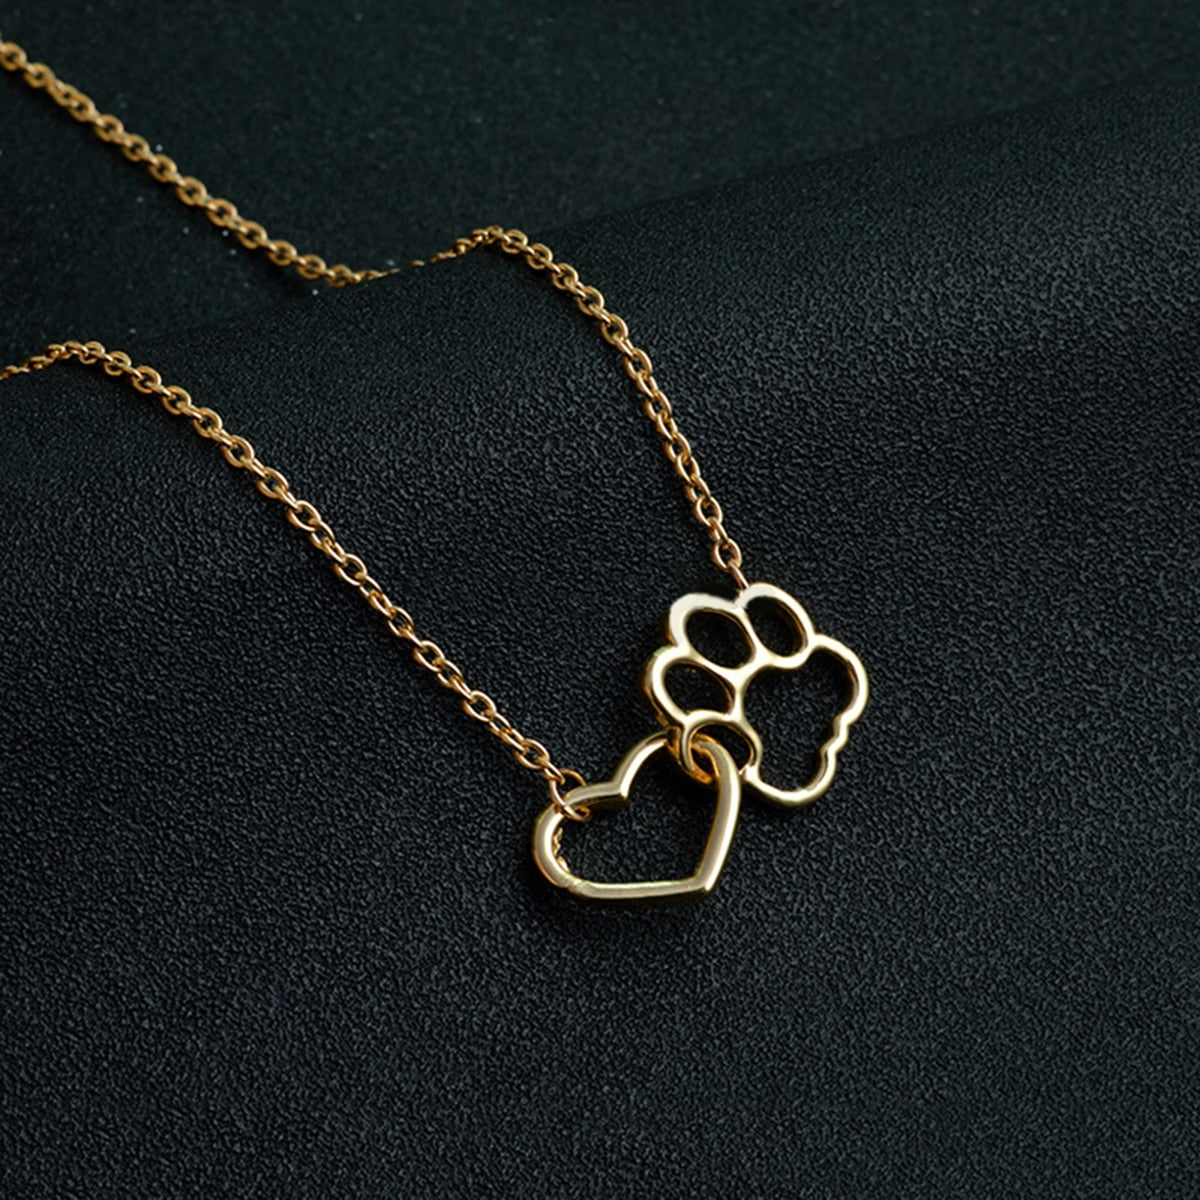 Gold Paw & Heart Necklace-mydogme-mydogme